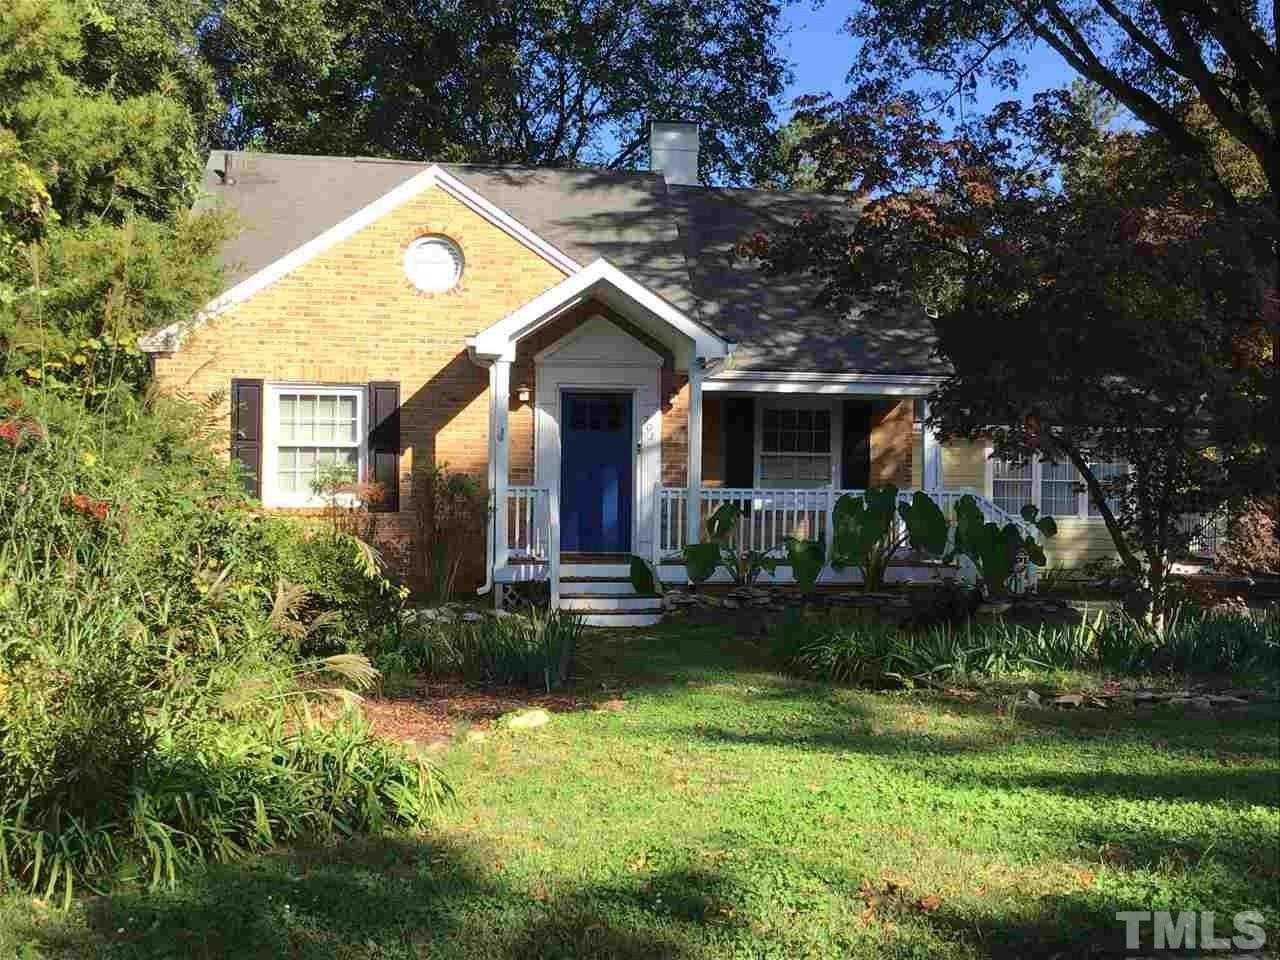 $3,250 - 4Br/3Ba -  for Sale in Hi Mount, Raleigh